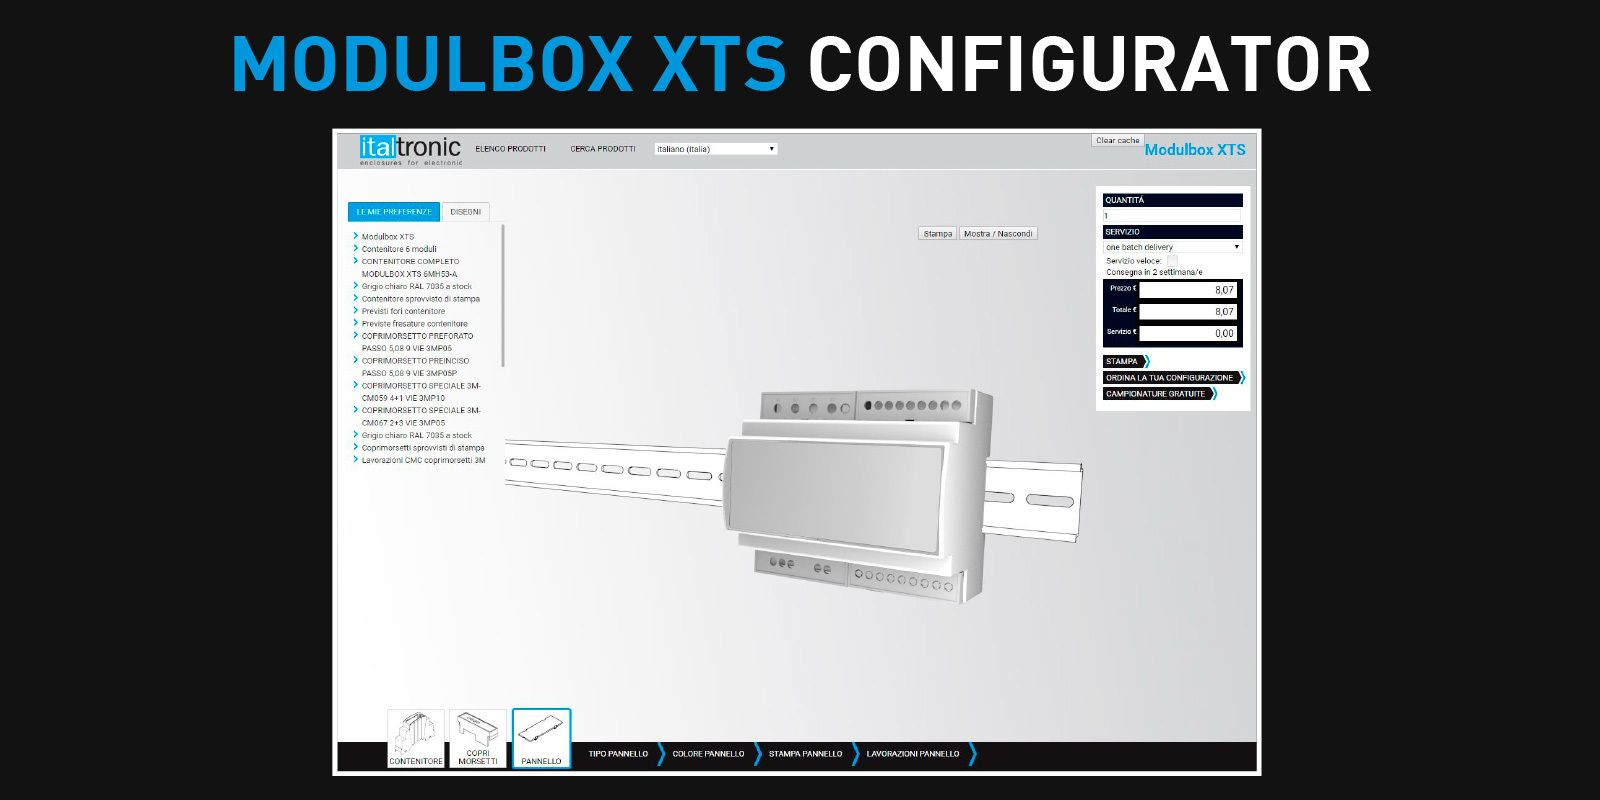 THE MODULBOX XTS CONFIGURATOR IS FINALLY AVAILABLE!